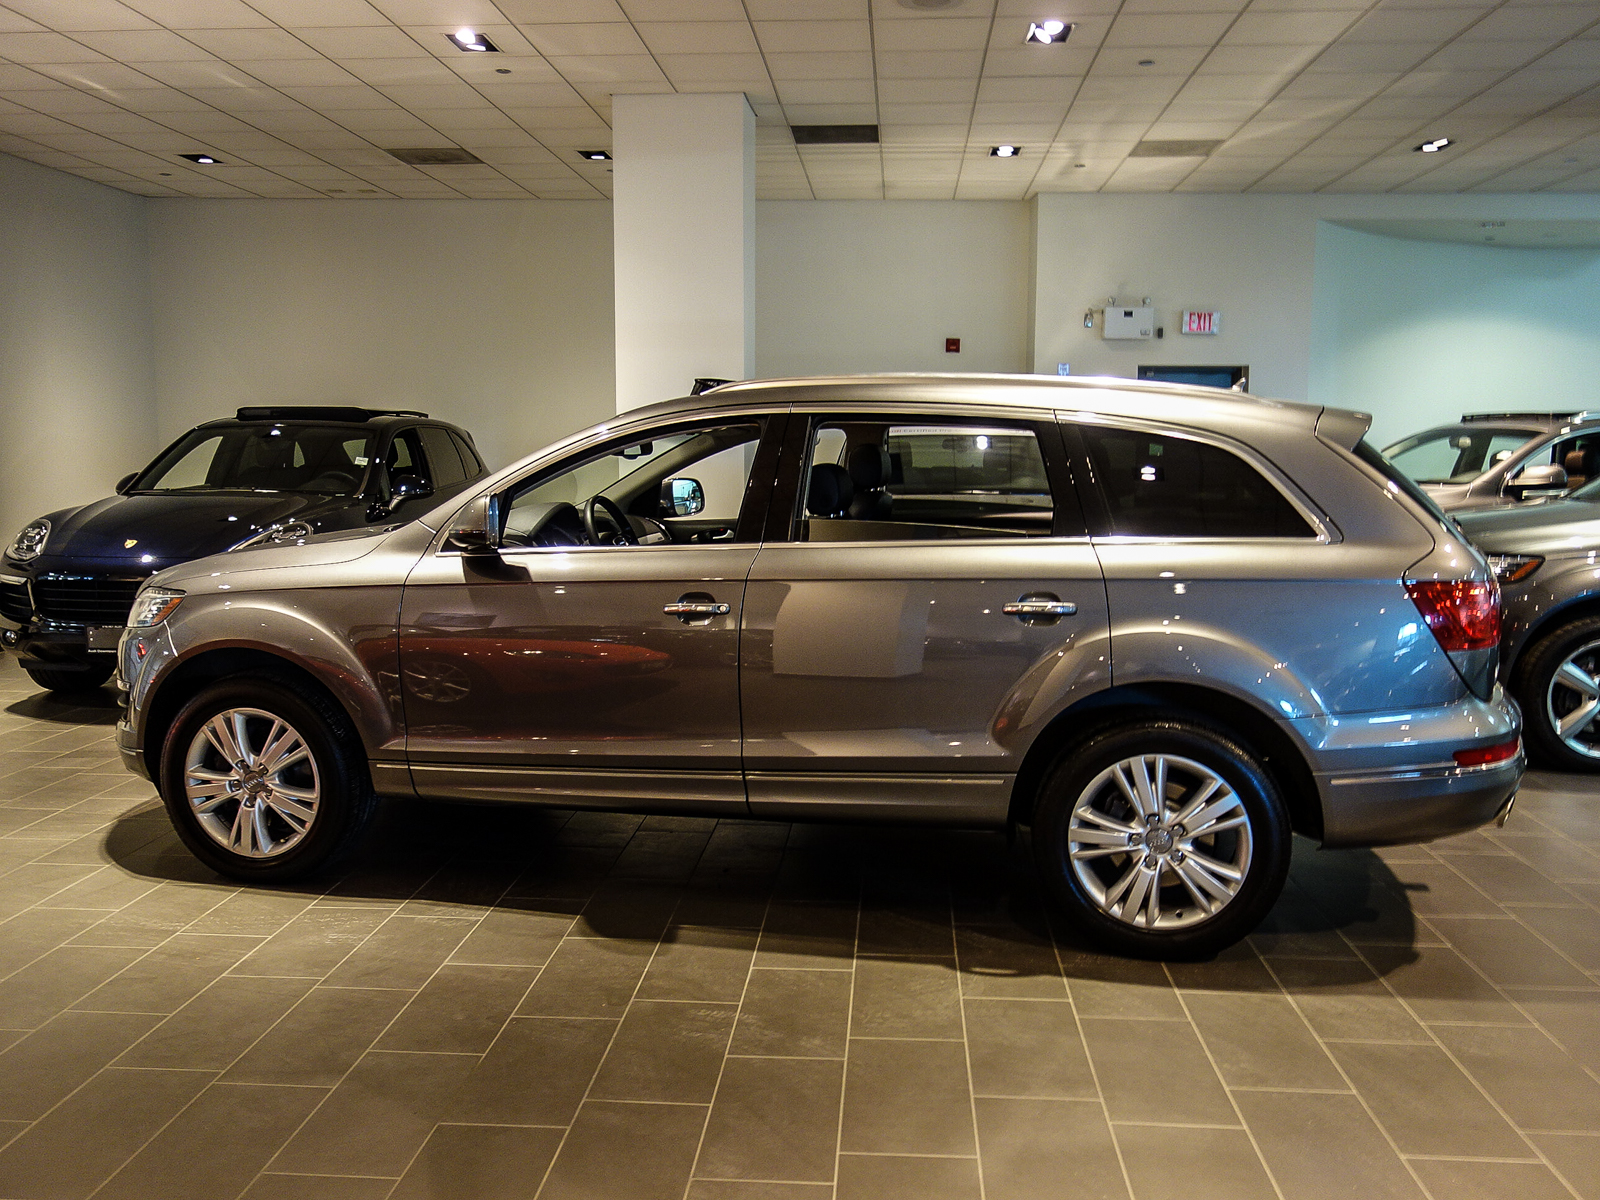 audi canada certified pre owned vehicle details 2013 audi q7 at audi downtown toronto. Black Bedroom Furniture Sets. Home Design Ideas